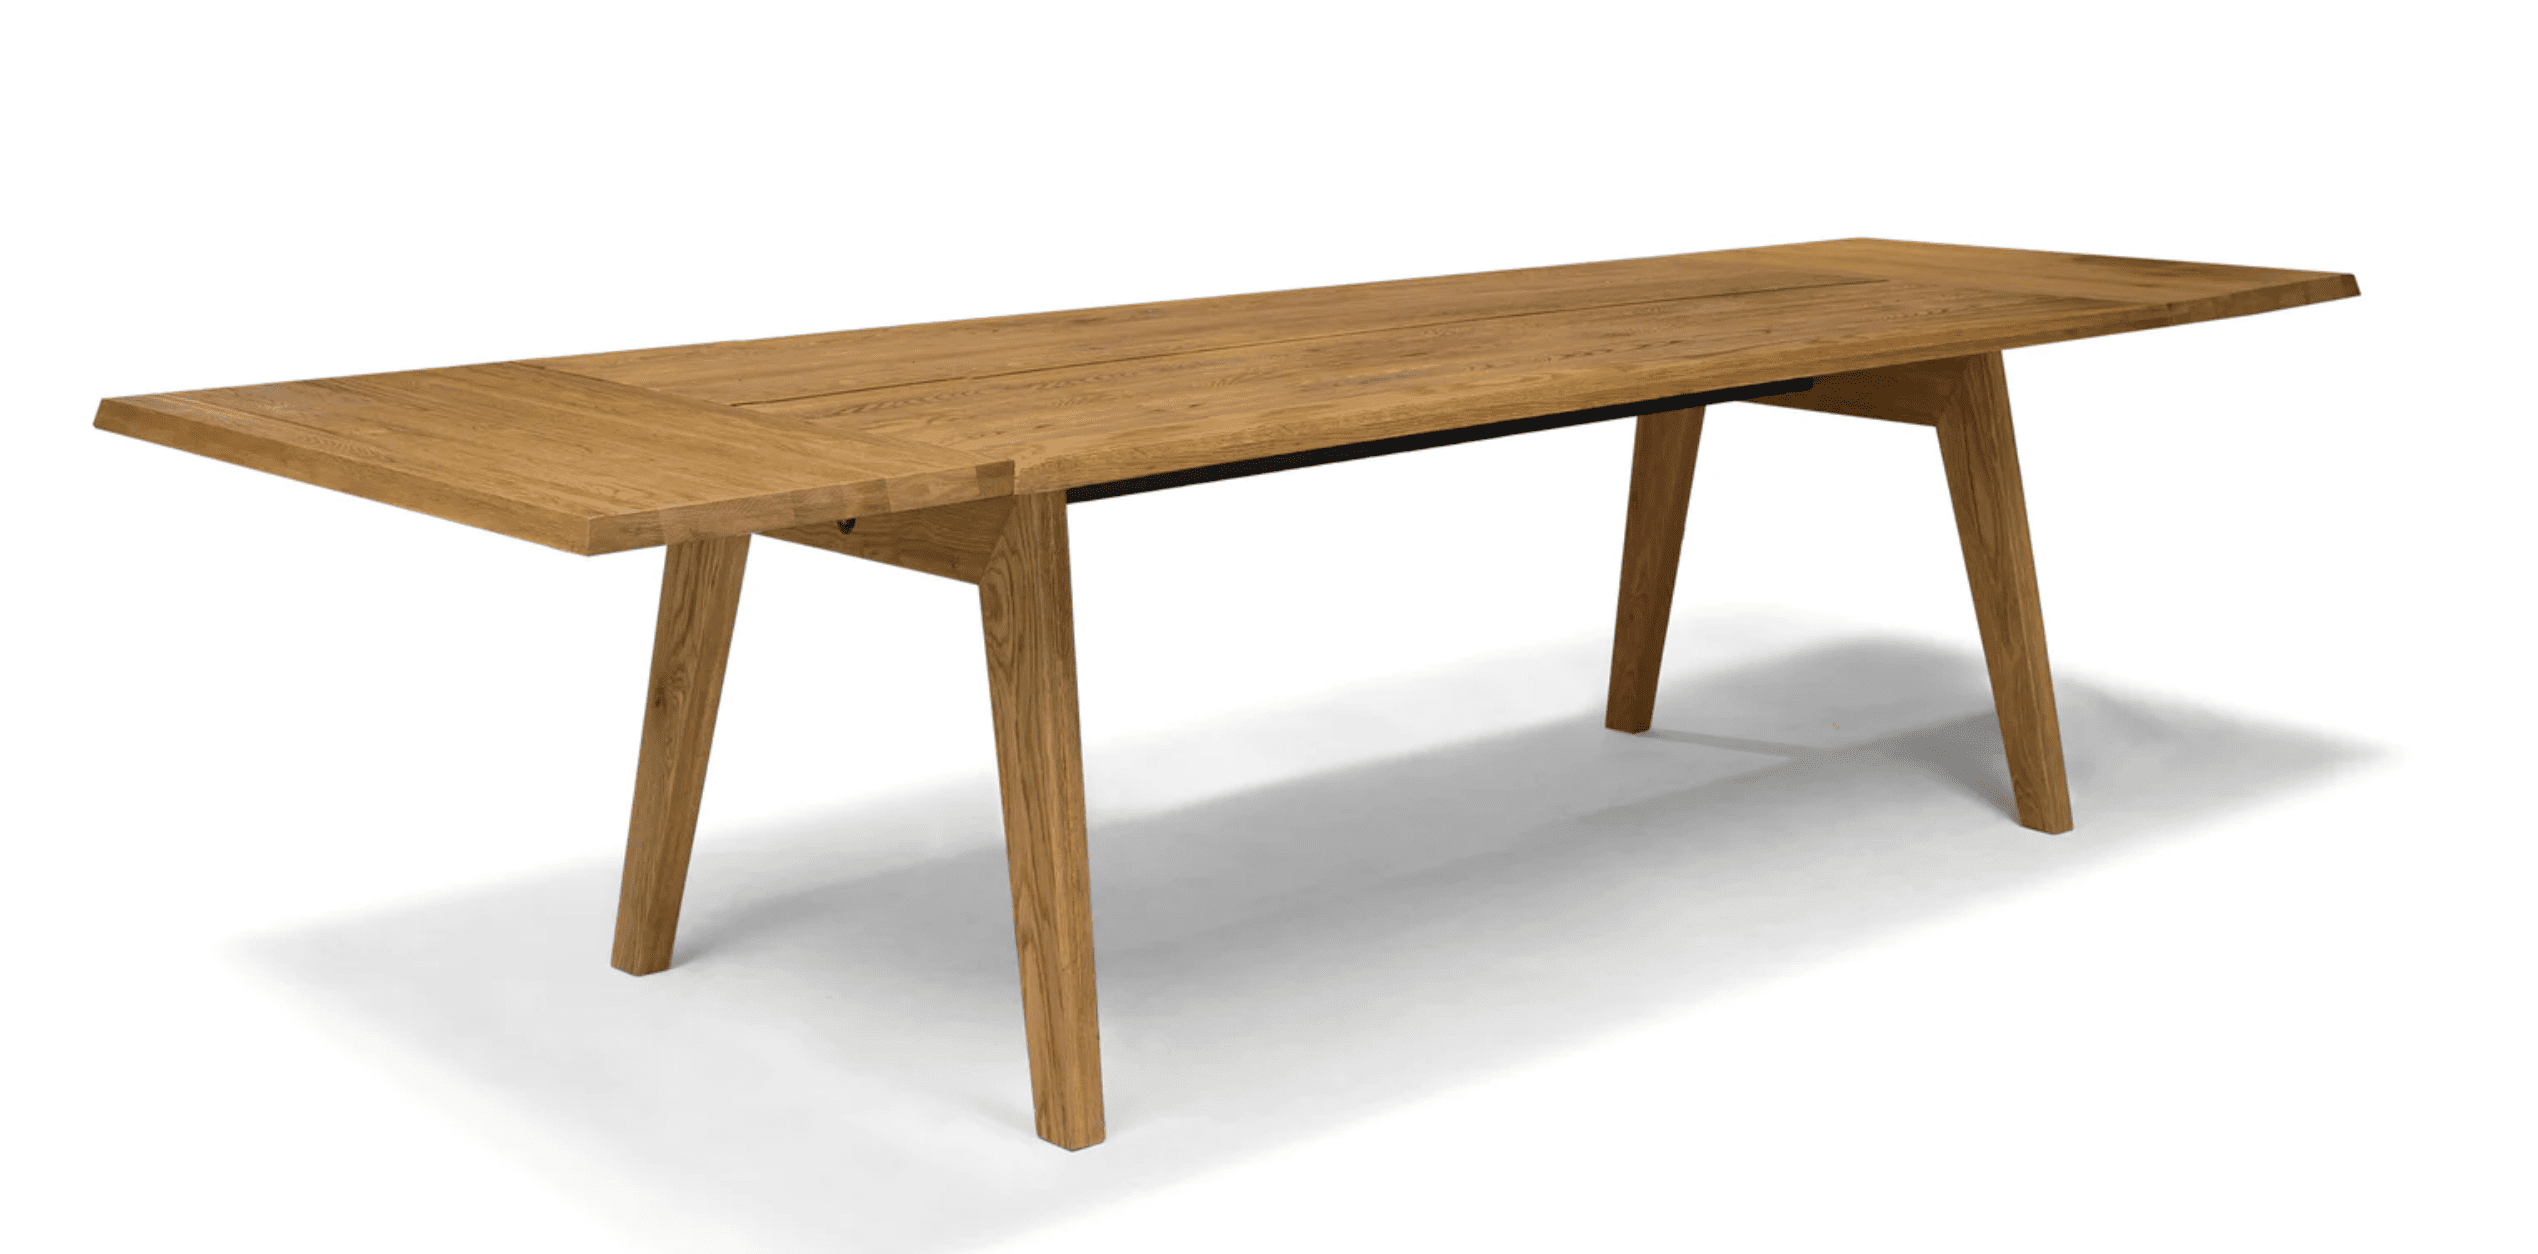 Madera oak dining table, extendable